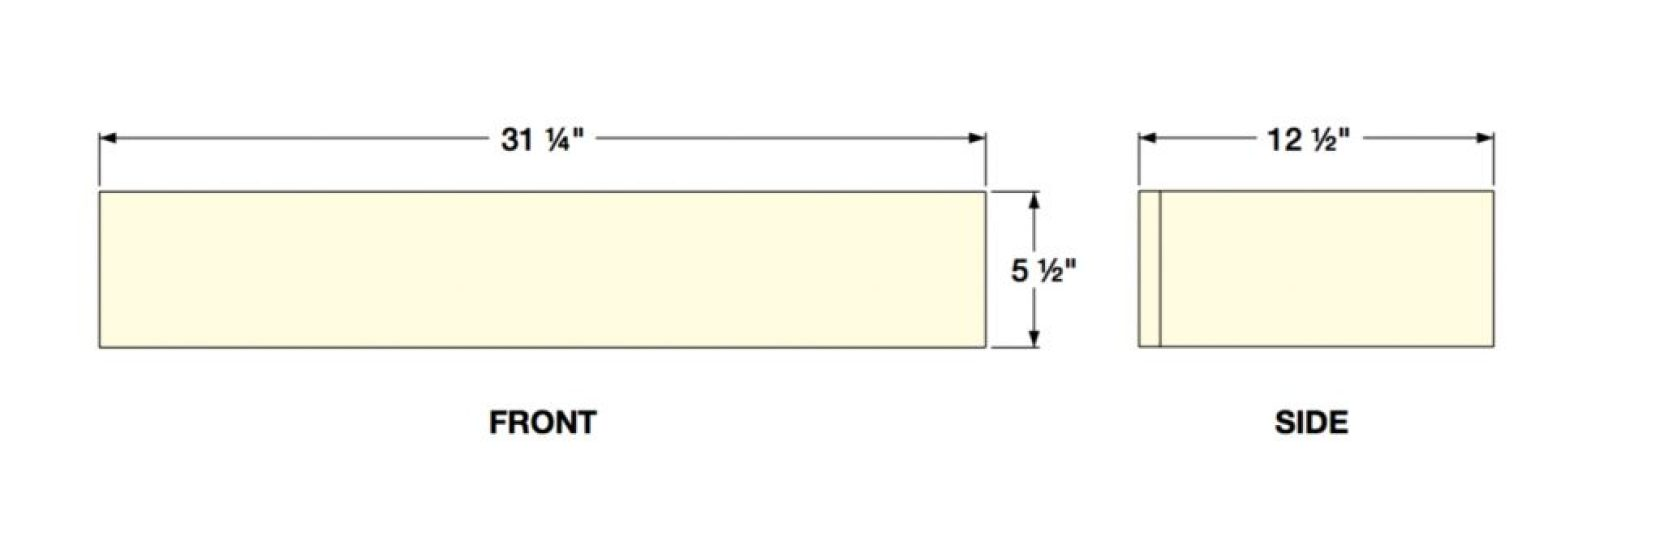 Dimensions of Floating Shelf